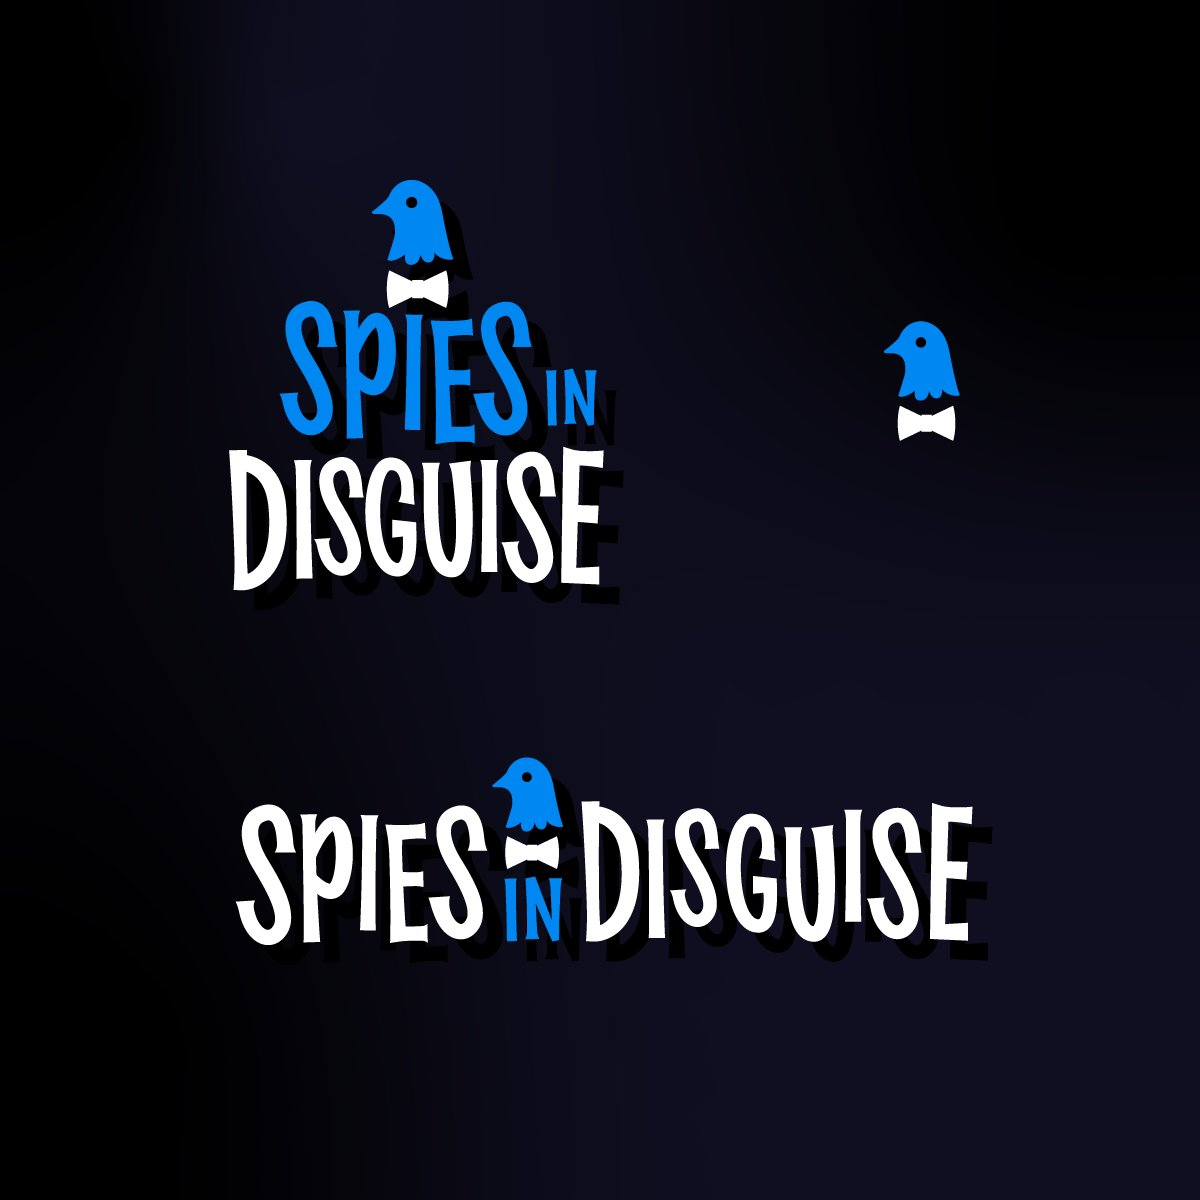 A concept from our custom lettering treatments for Spies in Disguise, an animated spy movie from Blue Sky and 20th Century Fox. Each solution we delivered had to have an element that could pop out and act as a covert badge icon. Not final movie art, but a fun workup exploration. pic.twitter.com/H3N4zvlNxm